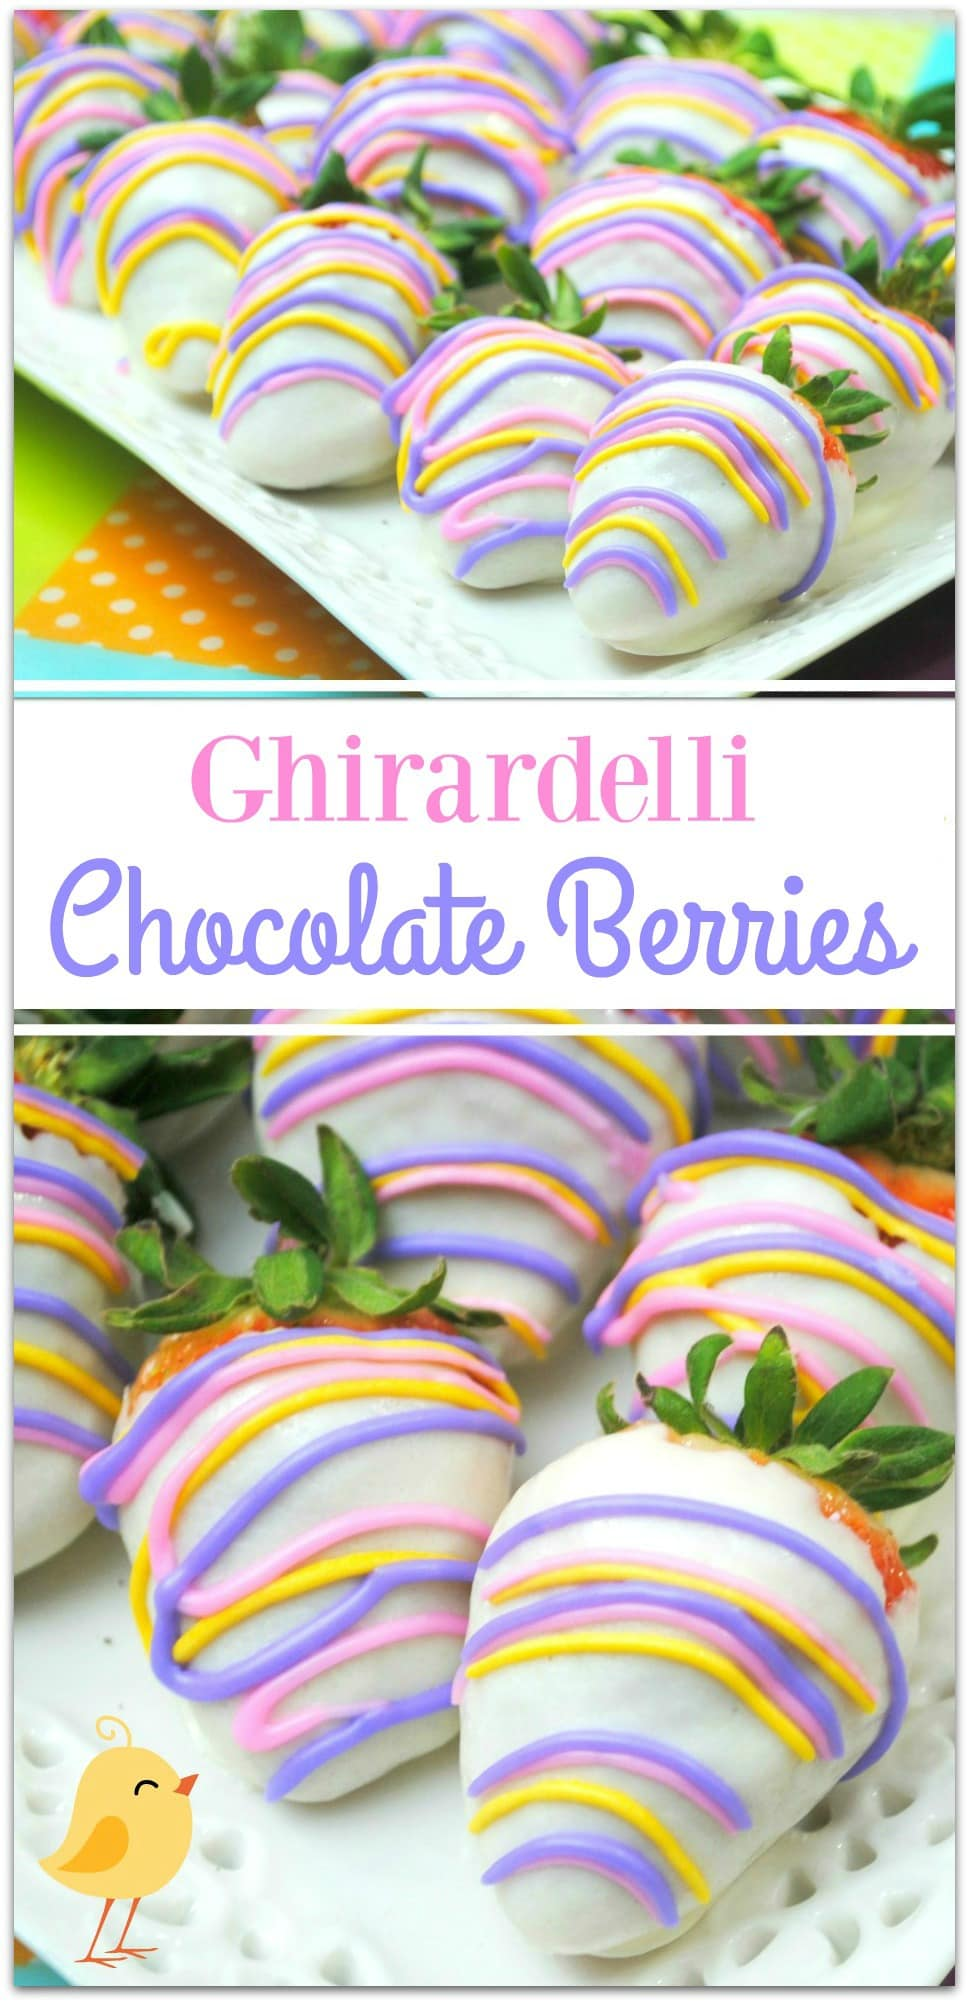 These Ghirardelli Chocolate Berries are so delicious, I could eat every last one all by myself! So pretty, dipped in Ghirardelli white chocolate and decorated with a drizzle of royal icing, this is such an easy recipe! These would be a special treat for so many occasions, like Easter, a baby shower, or any party where you want to bring a festive but easy dessert that won't keep you in the kitchen all day!